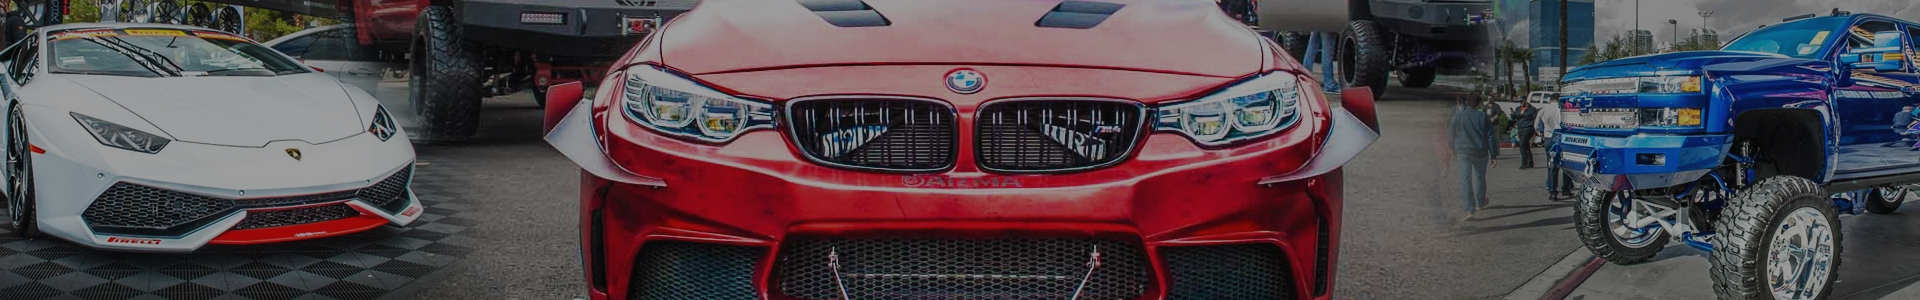 Muscle Car Tyres